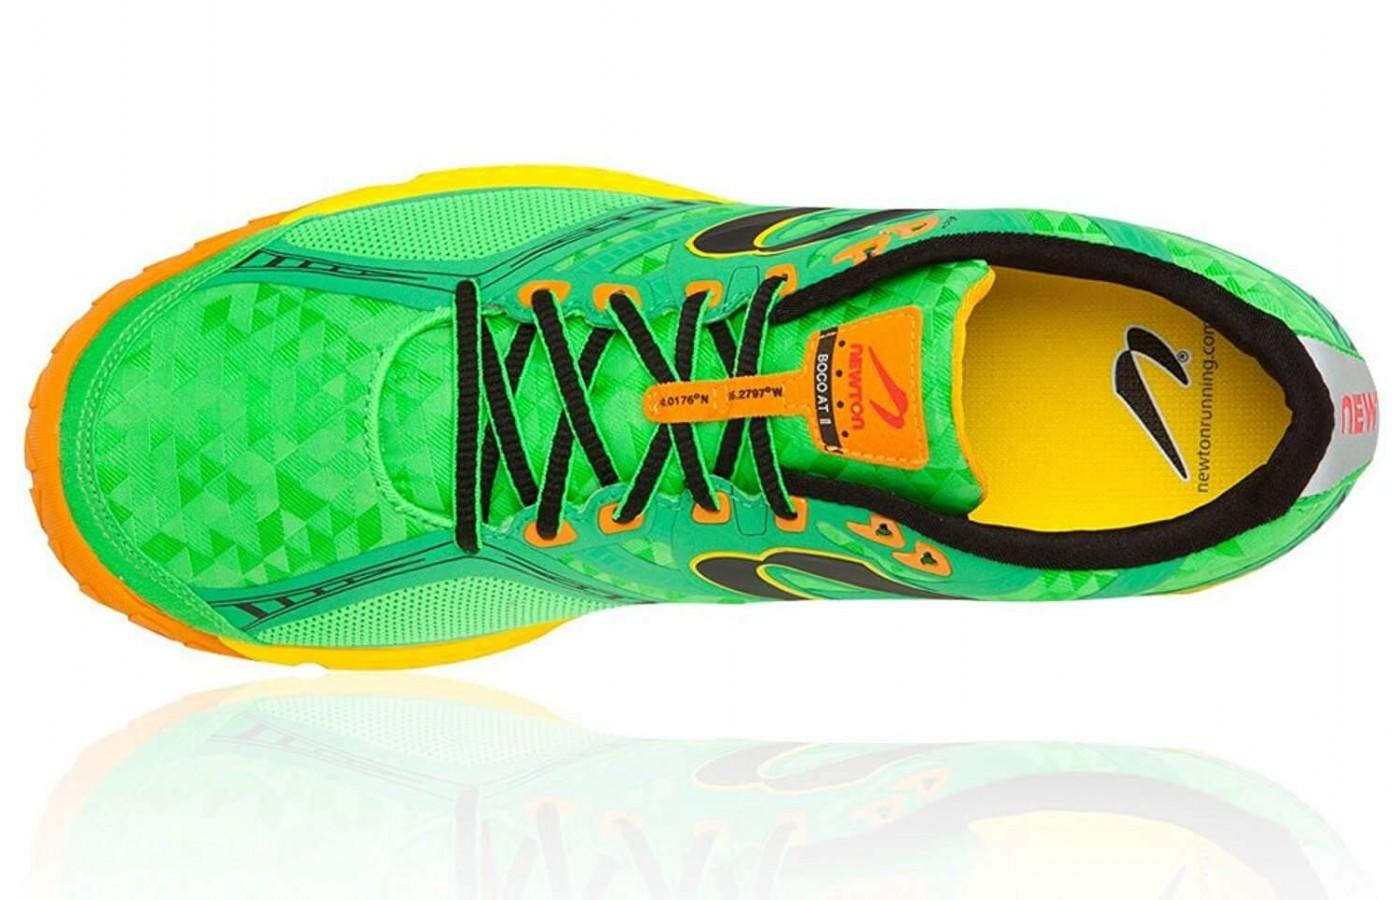 Runners loved the breathability and superior comfort.